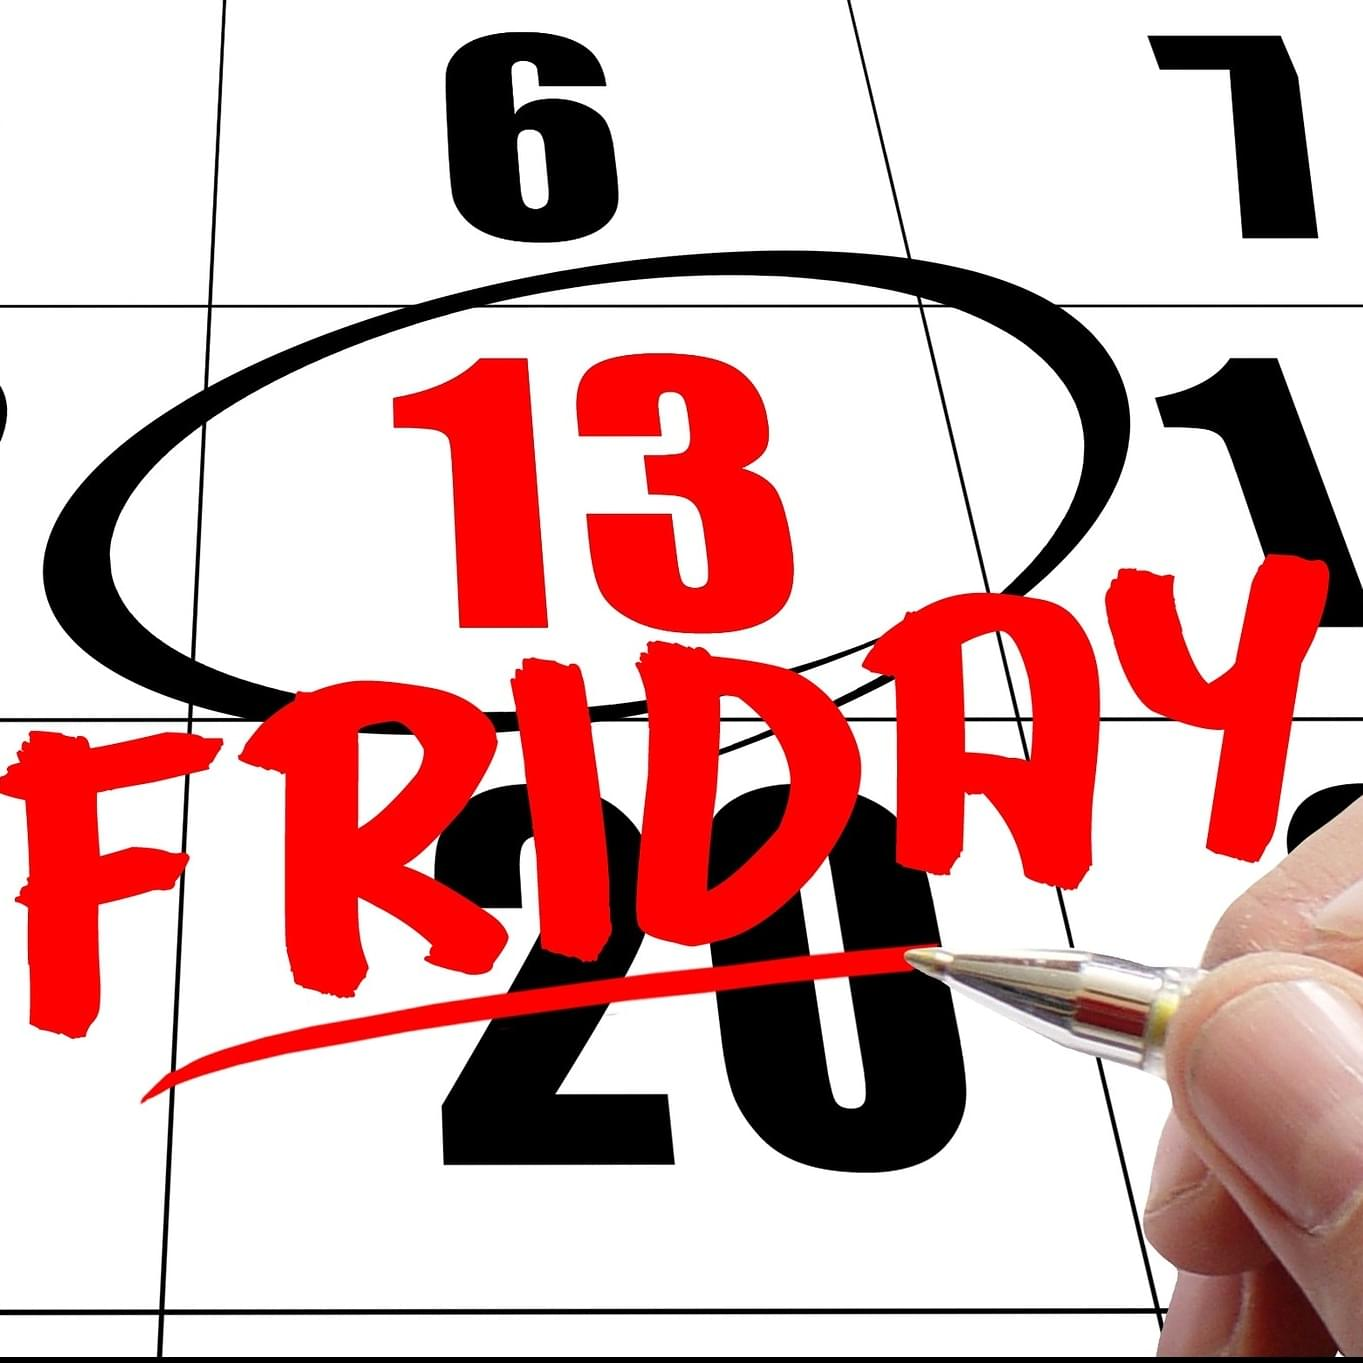 Today is Friday the 13th!